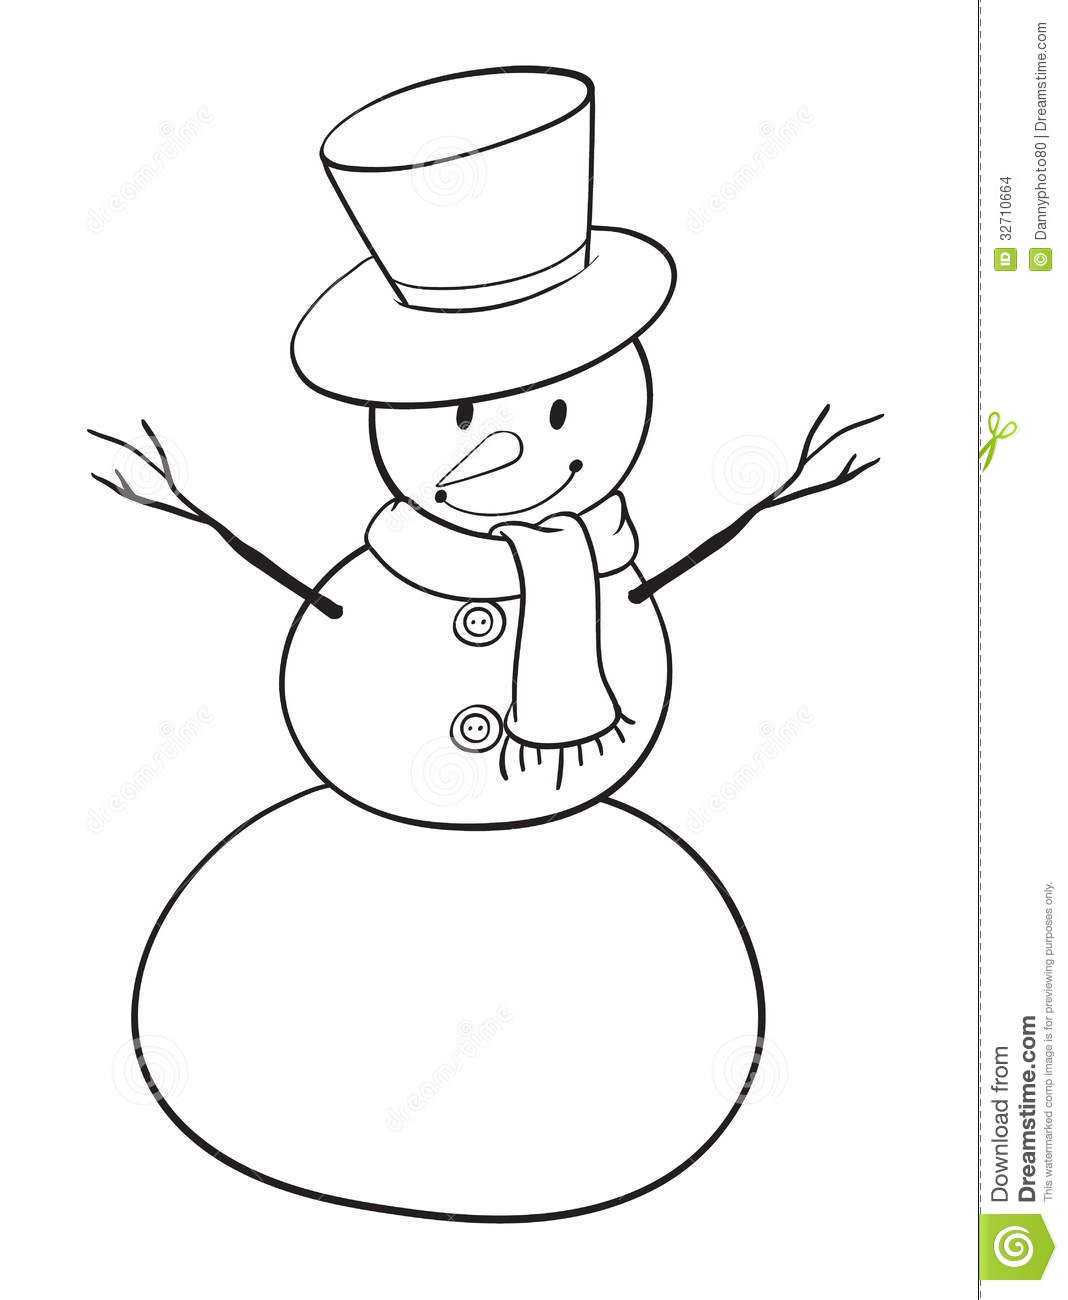 Detailed illustration of a snowman on a white background.